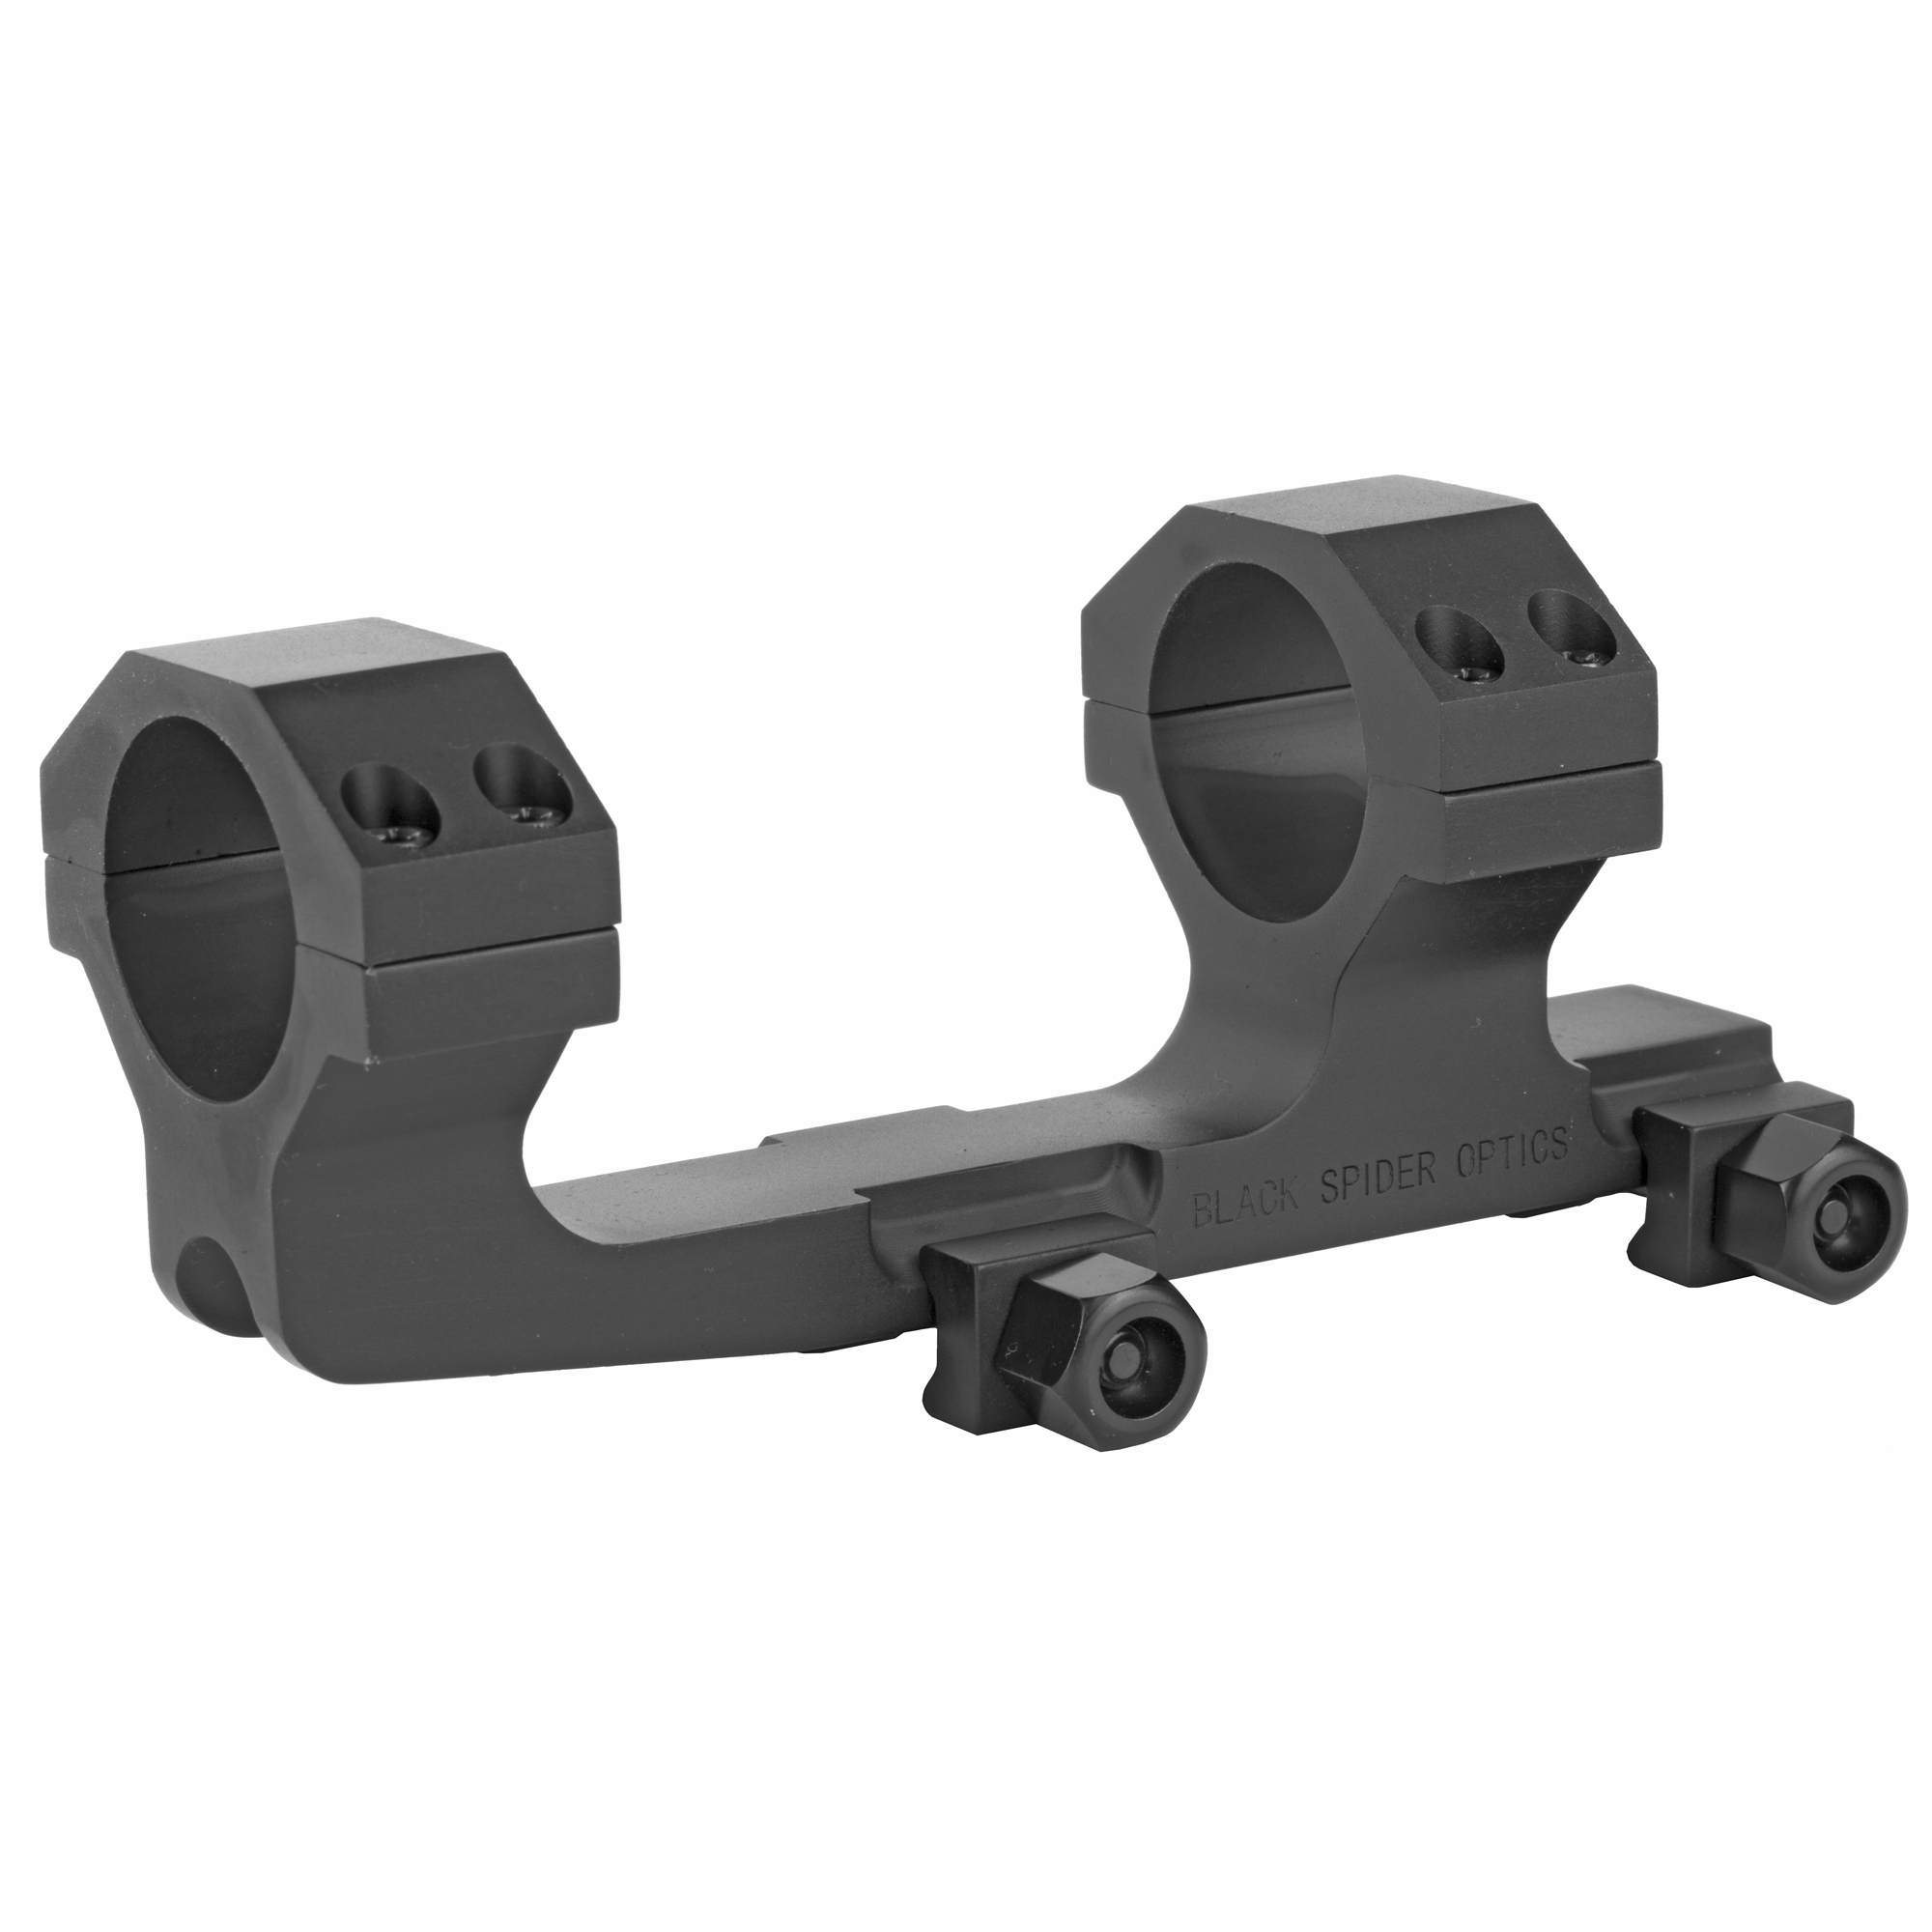 """Black Spider Optics was formed to fill the void in the market for high-quality"""" affordable optics and mounts that look great and perform exceptionally well. Because of their commitment to Customer Satisfaction"""" Technical Support"""" and Product Warranty"""" it's no surprise that the U.S. Military"""" Law Enforcement"""" Hunters and Enthusiasts alike choose Black Spider Optics!"""